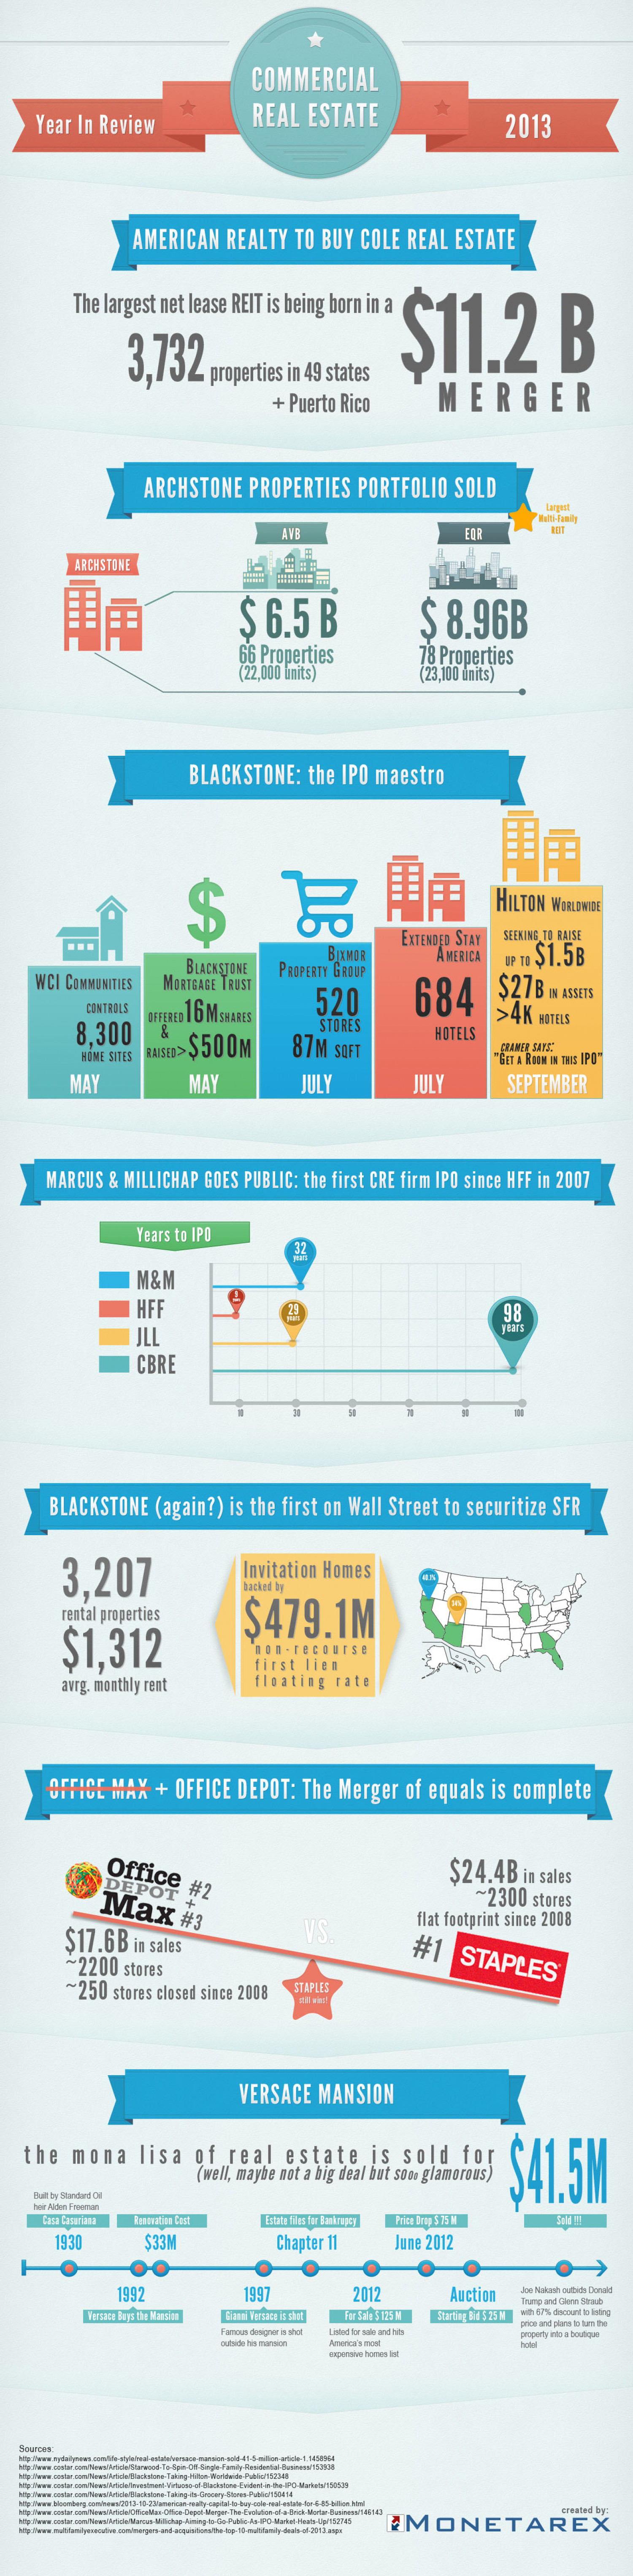 Commercial Real Estate 2013: a year in review Infographic